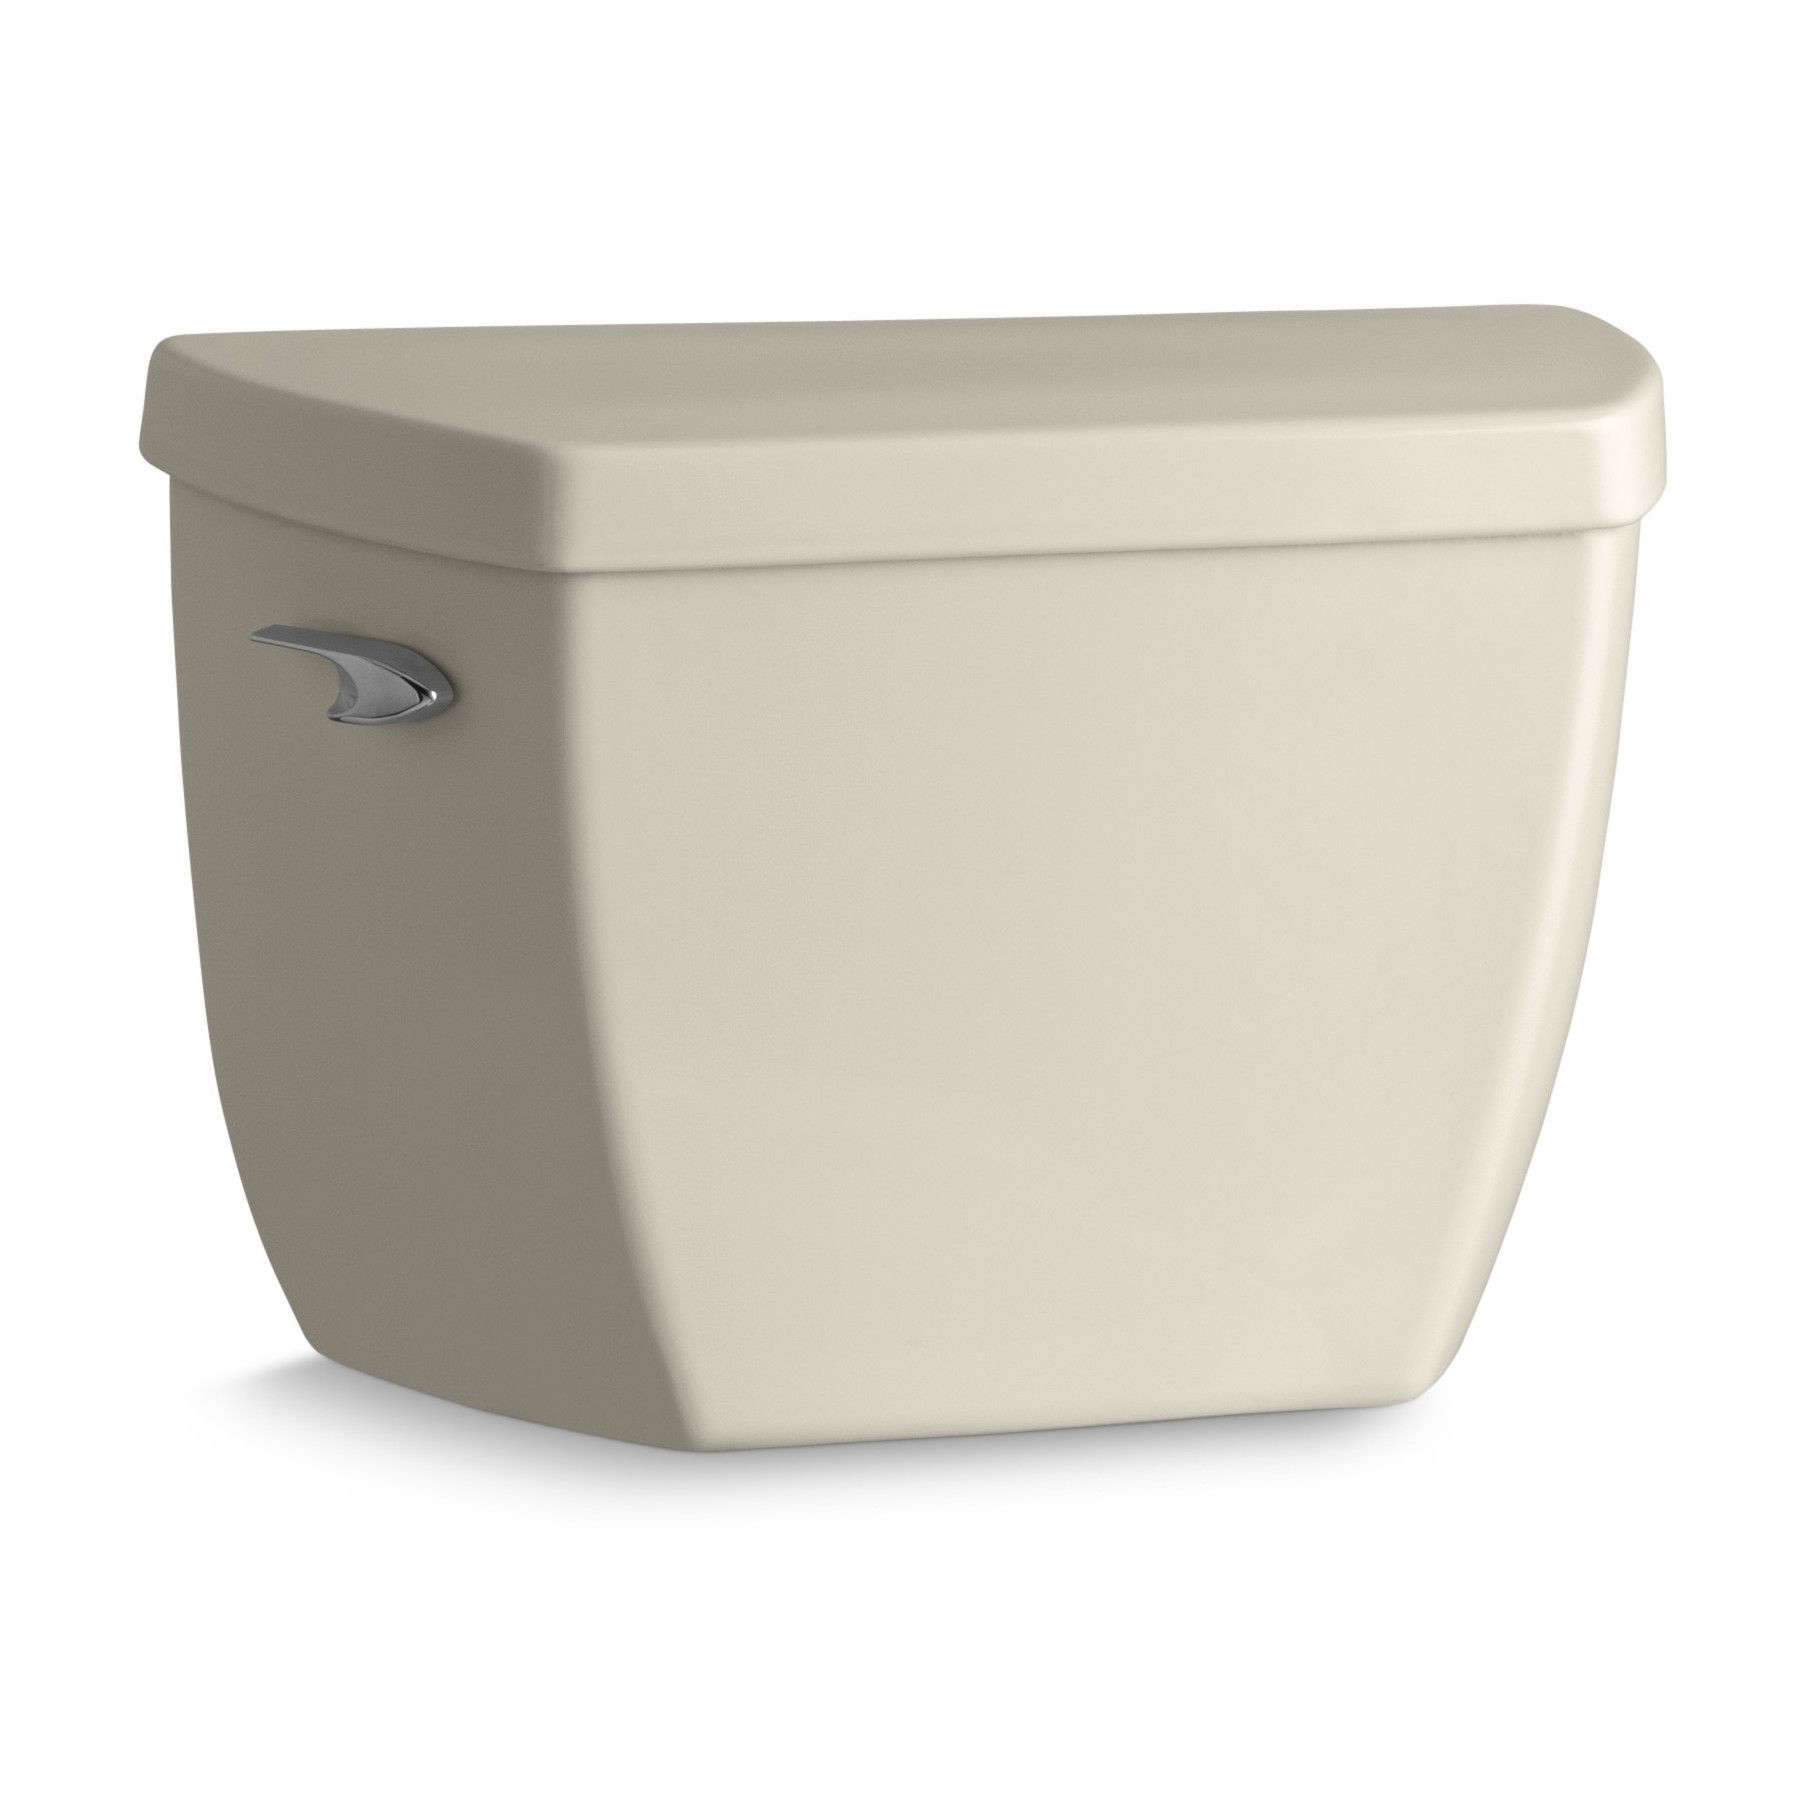 Highline 1 6 Gpf Toilet Tank Seat Not Included Classic Toilets